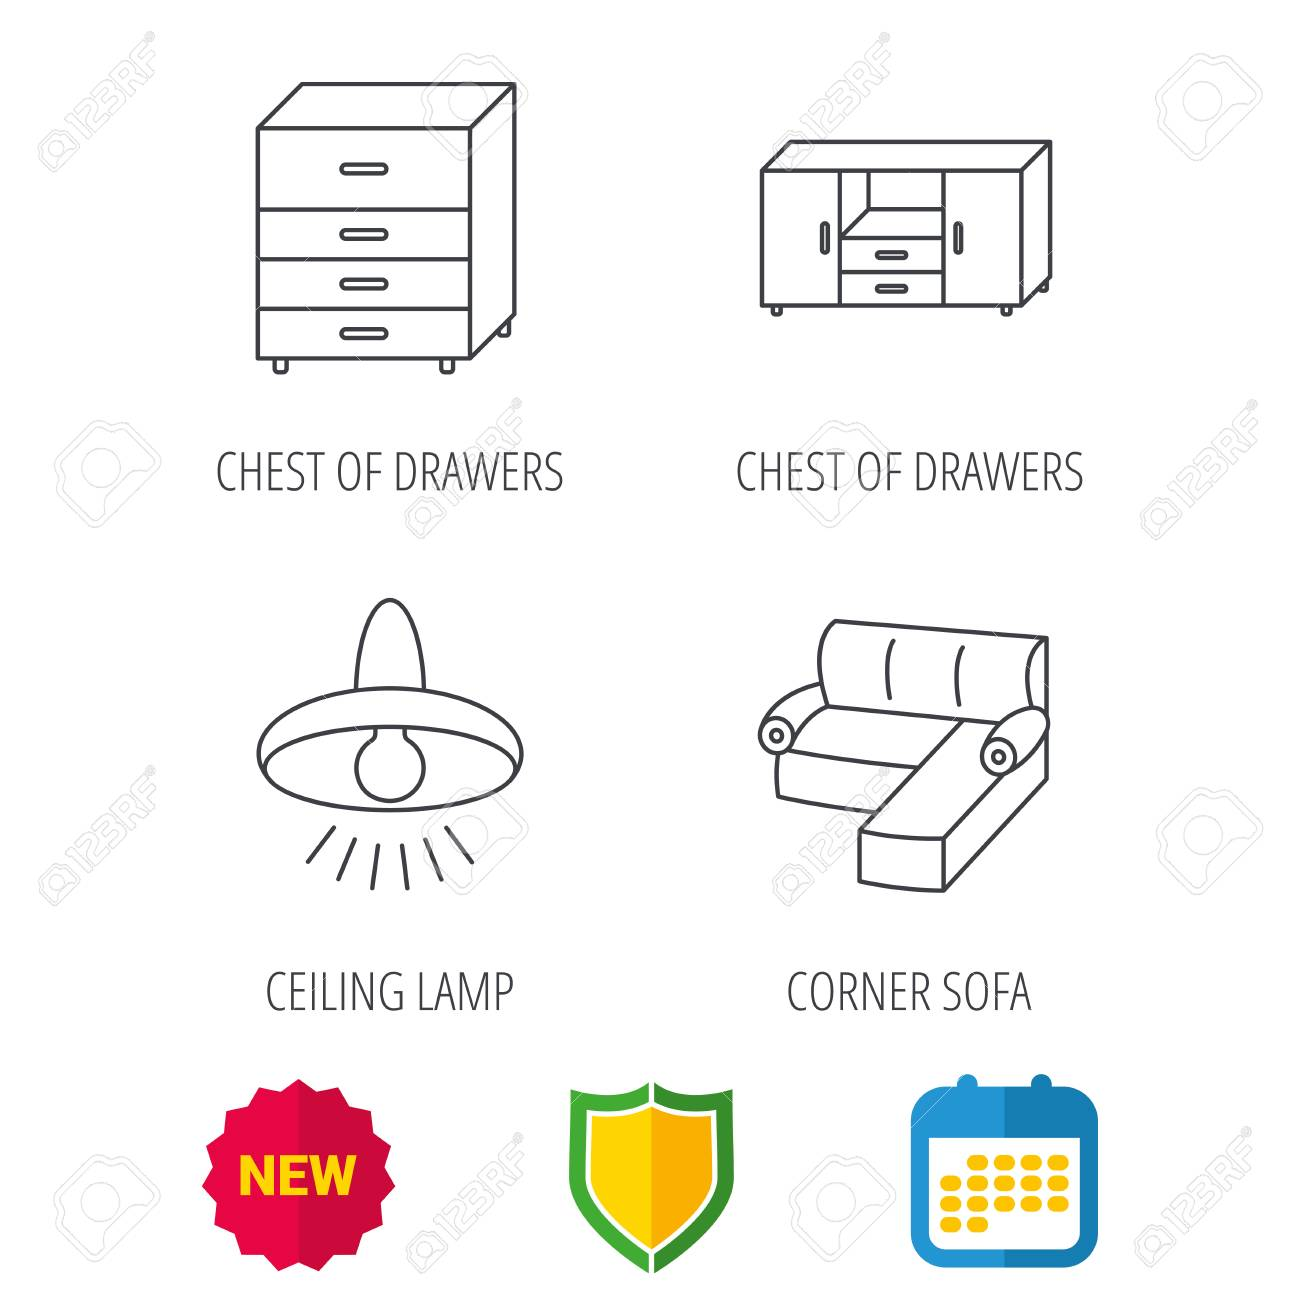 Corner Sofa Ceiling Lamp And Chest Of Drawers Icons Furniture